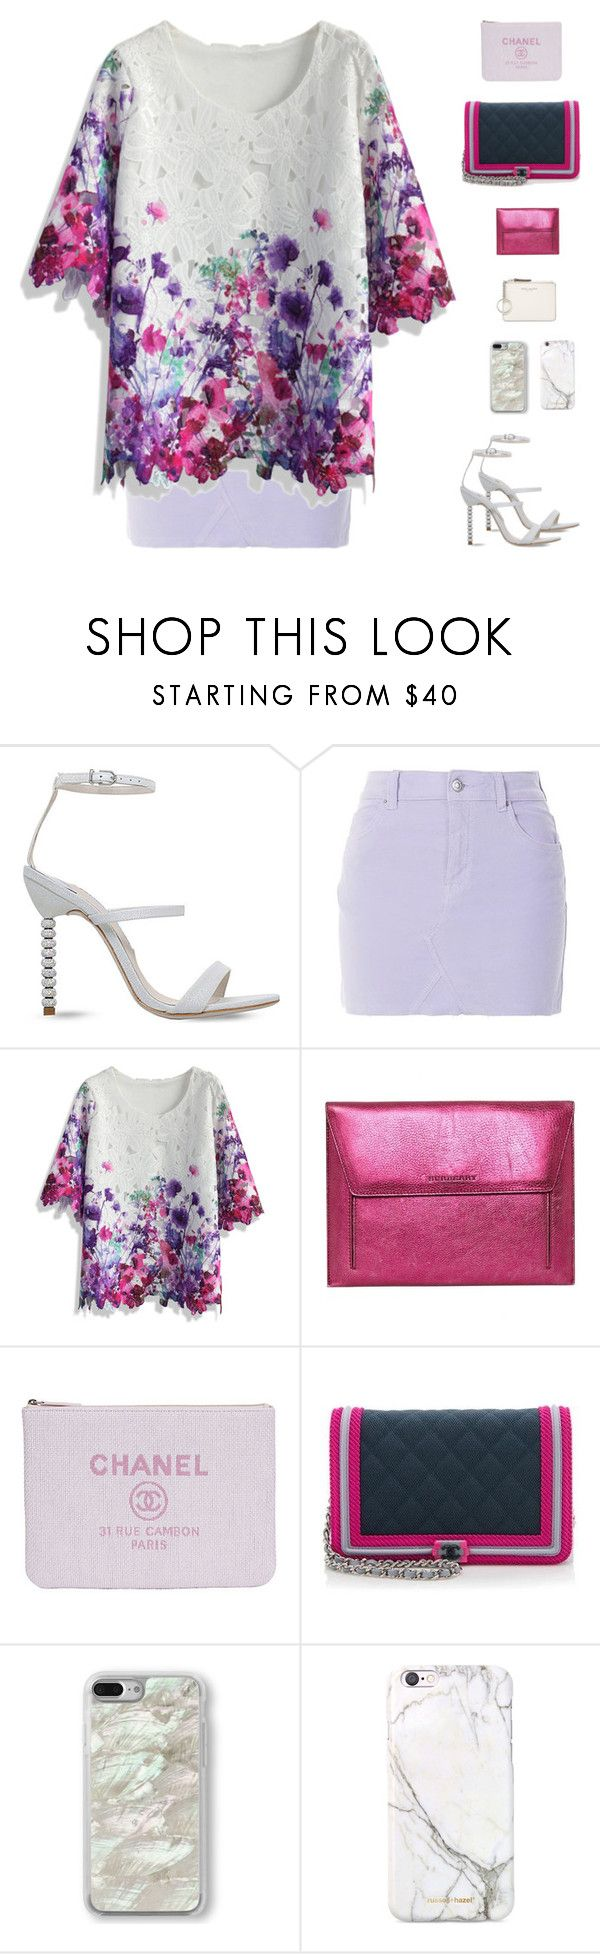 """Sophia Webster Rosalind Crystal-Embellished Heeled Sandals"" by sol4nge ❤ liked on Polyvore featuring Sophia Webster, Topshop, Chicwish, Burberry, Chanel, Recover, russell+hazel and Marc Jacobs"